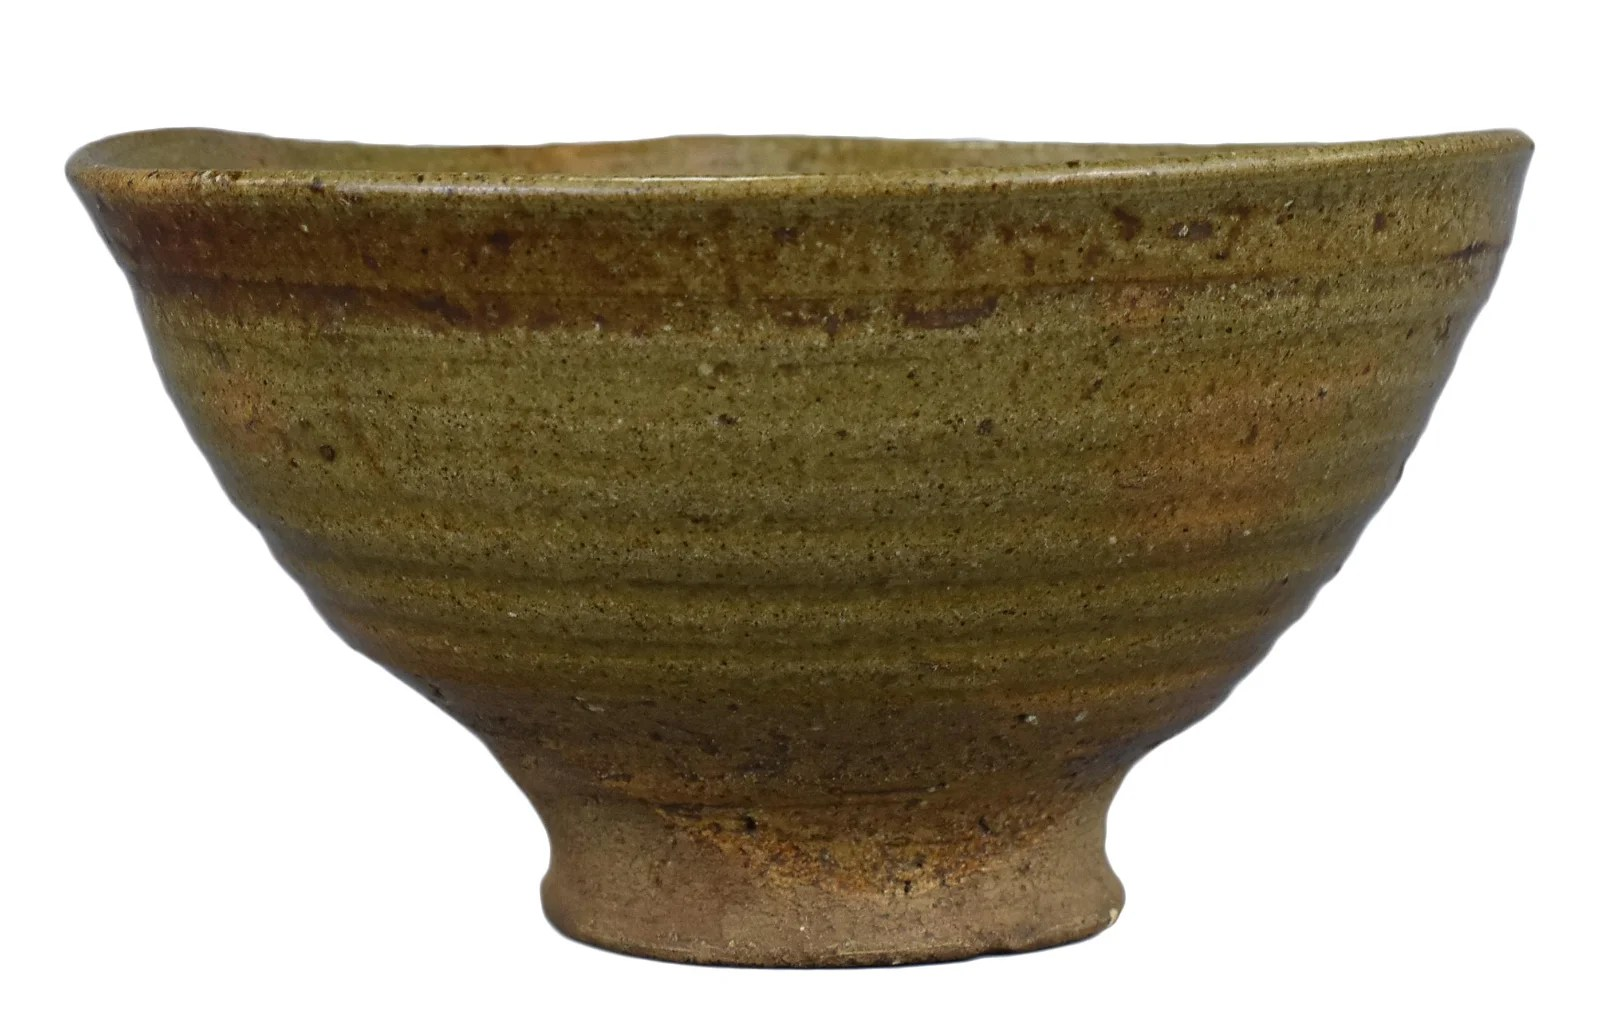 A Japanese or Korean Glazed Stoneware Bowl of Conical